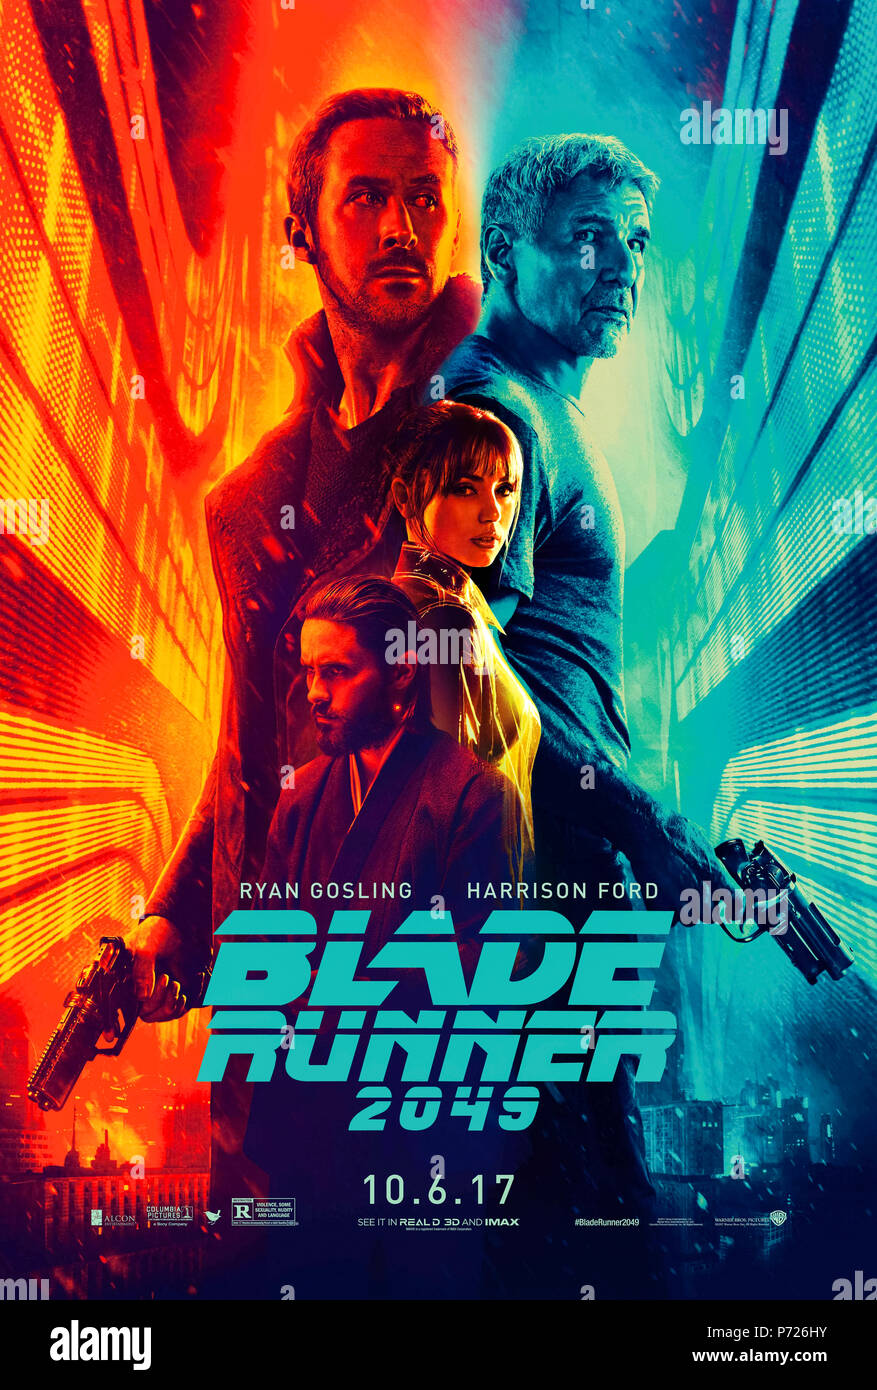 Blade Runner 2049 (2017) directed by Denis Villeneuve and starring Harrison Ford, Ryan Gosling, Ana de Armas and Jared Leto. A sequel to the 1982 classic set thirty years later where a new blade runner uncovers a secret. - Stock Image